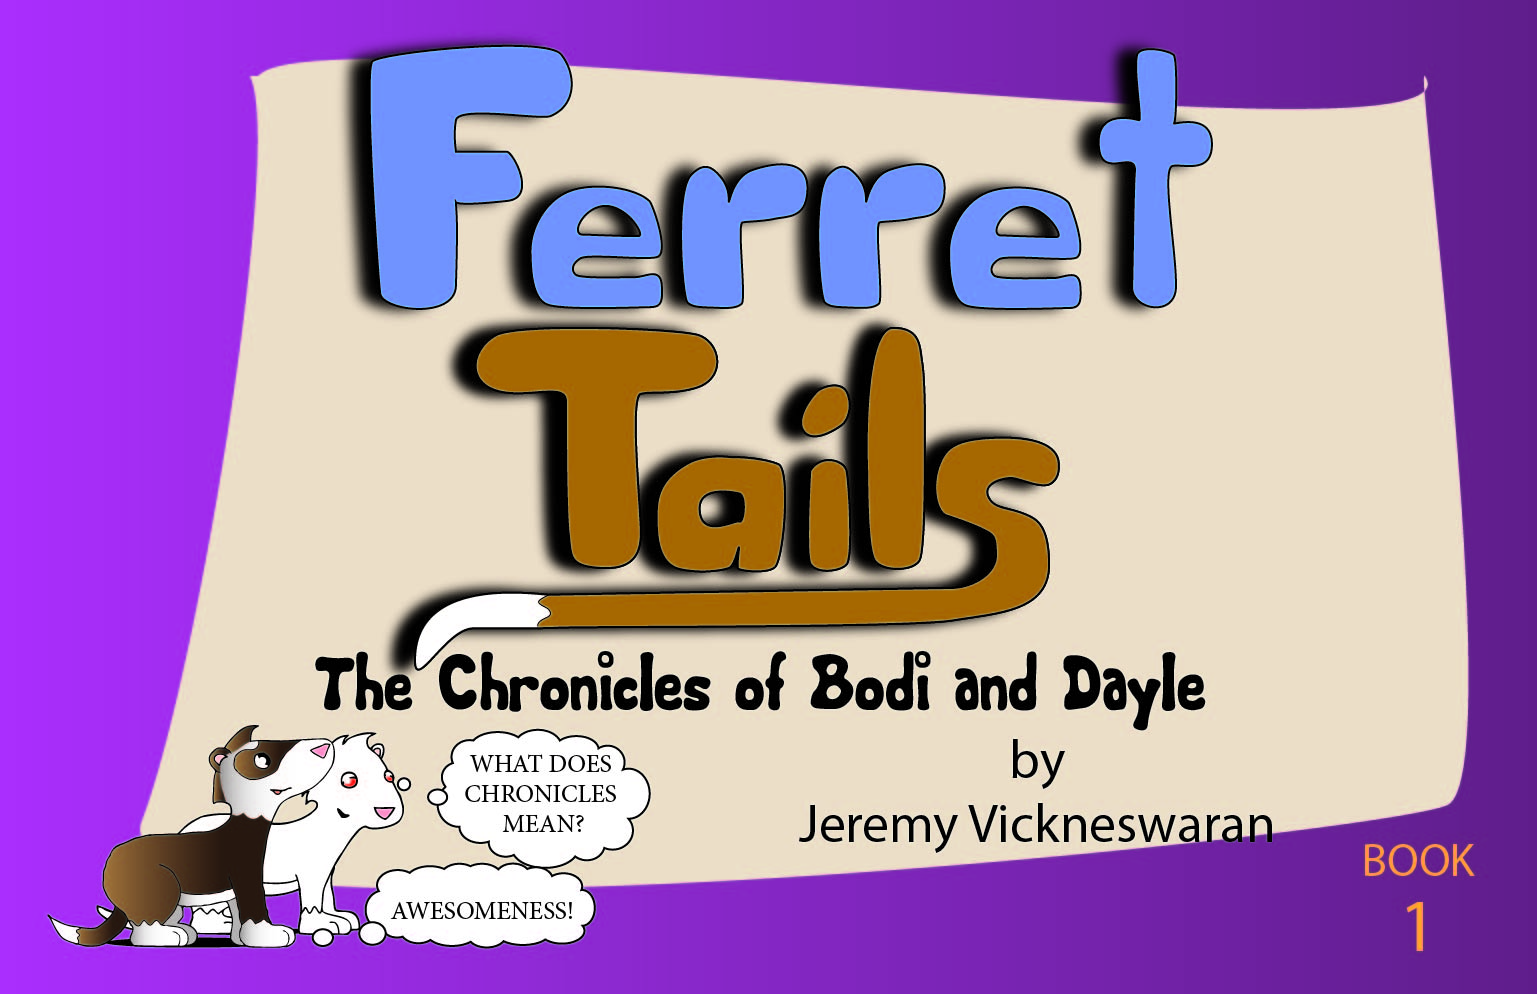 ferret tails book one